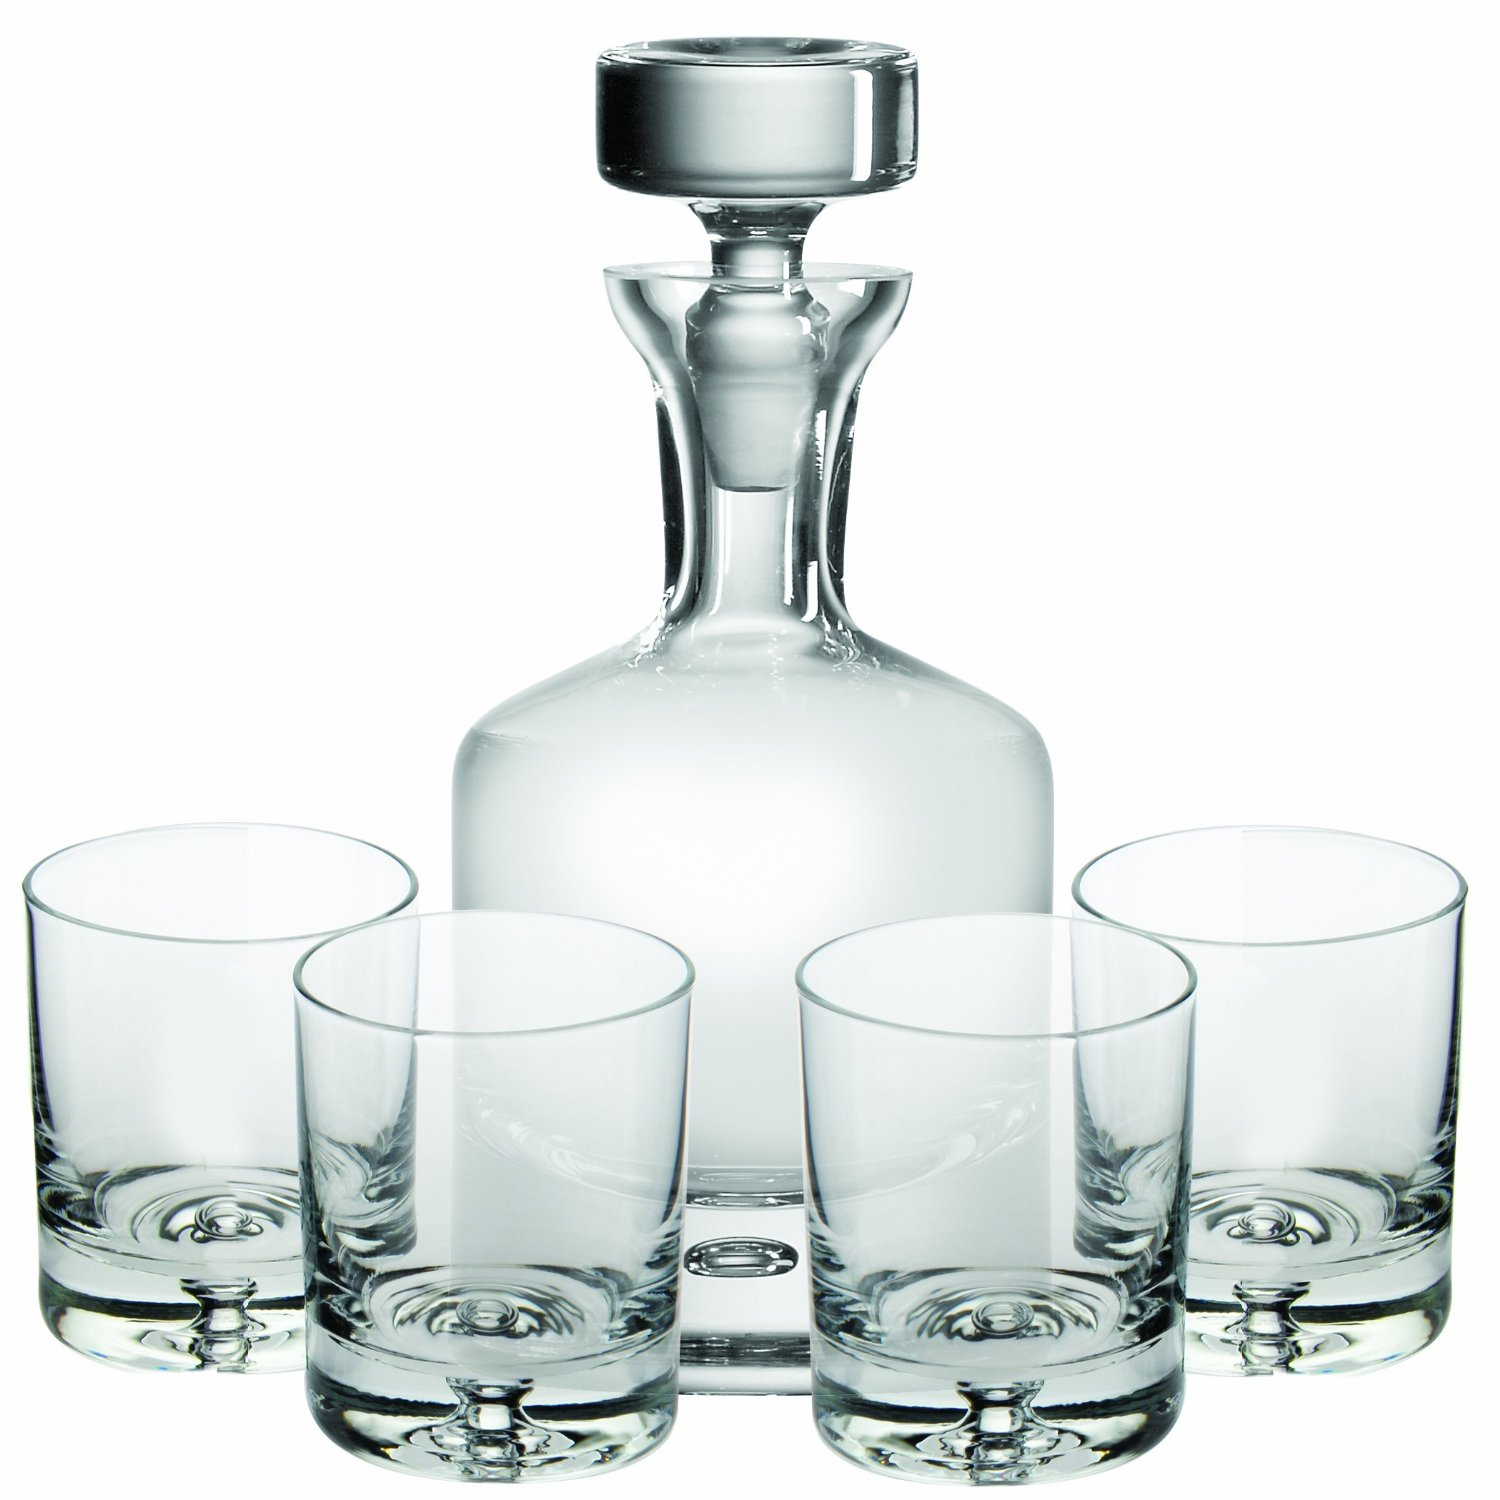 Awesome decanter set for dining sets ideas with crystal decanter set